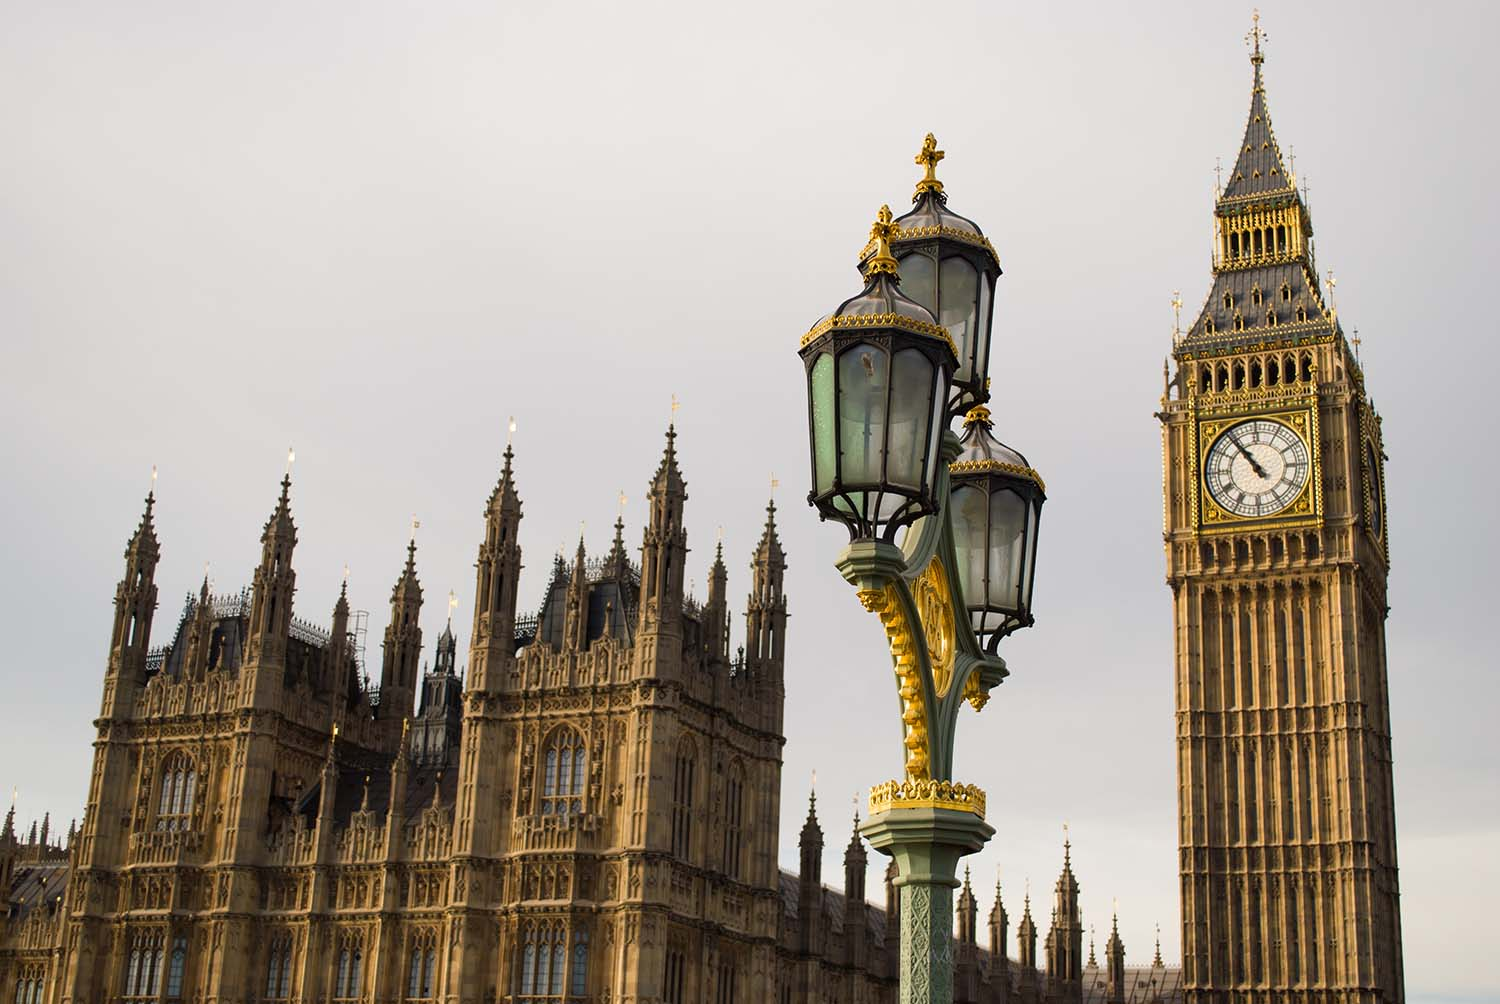 A close up of Big Ben and the Houses of Parliament